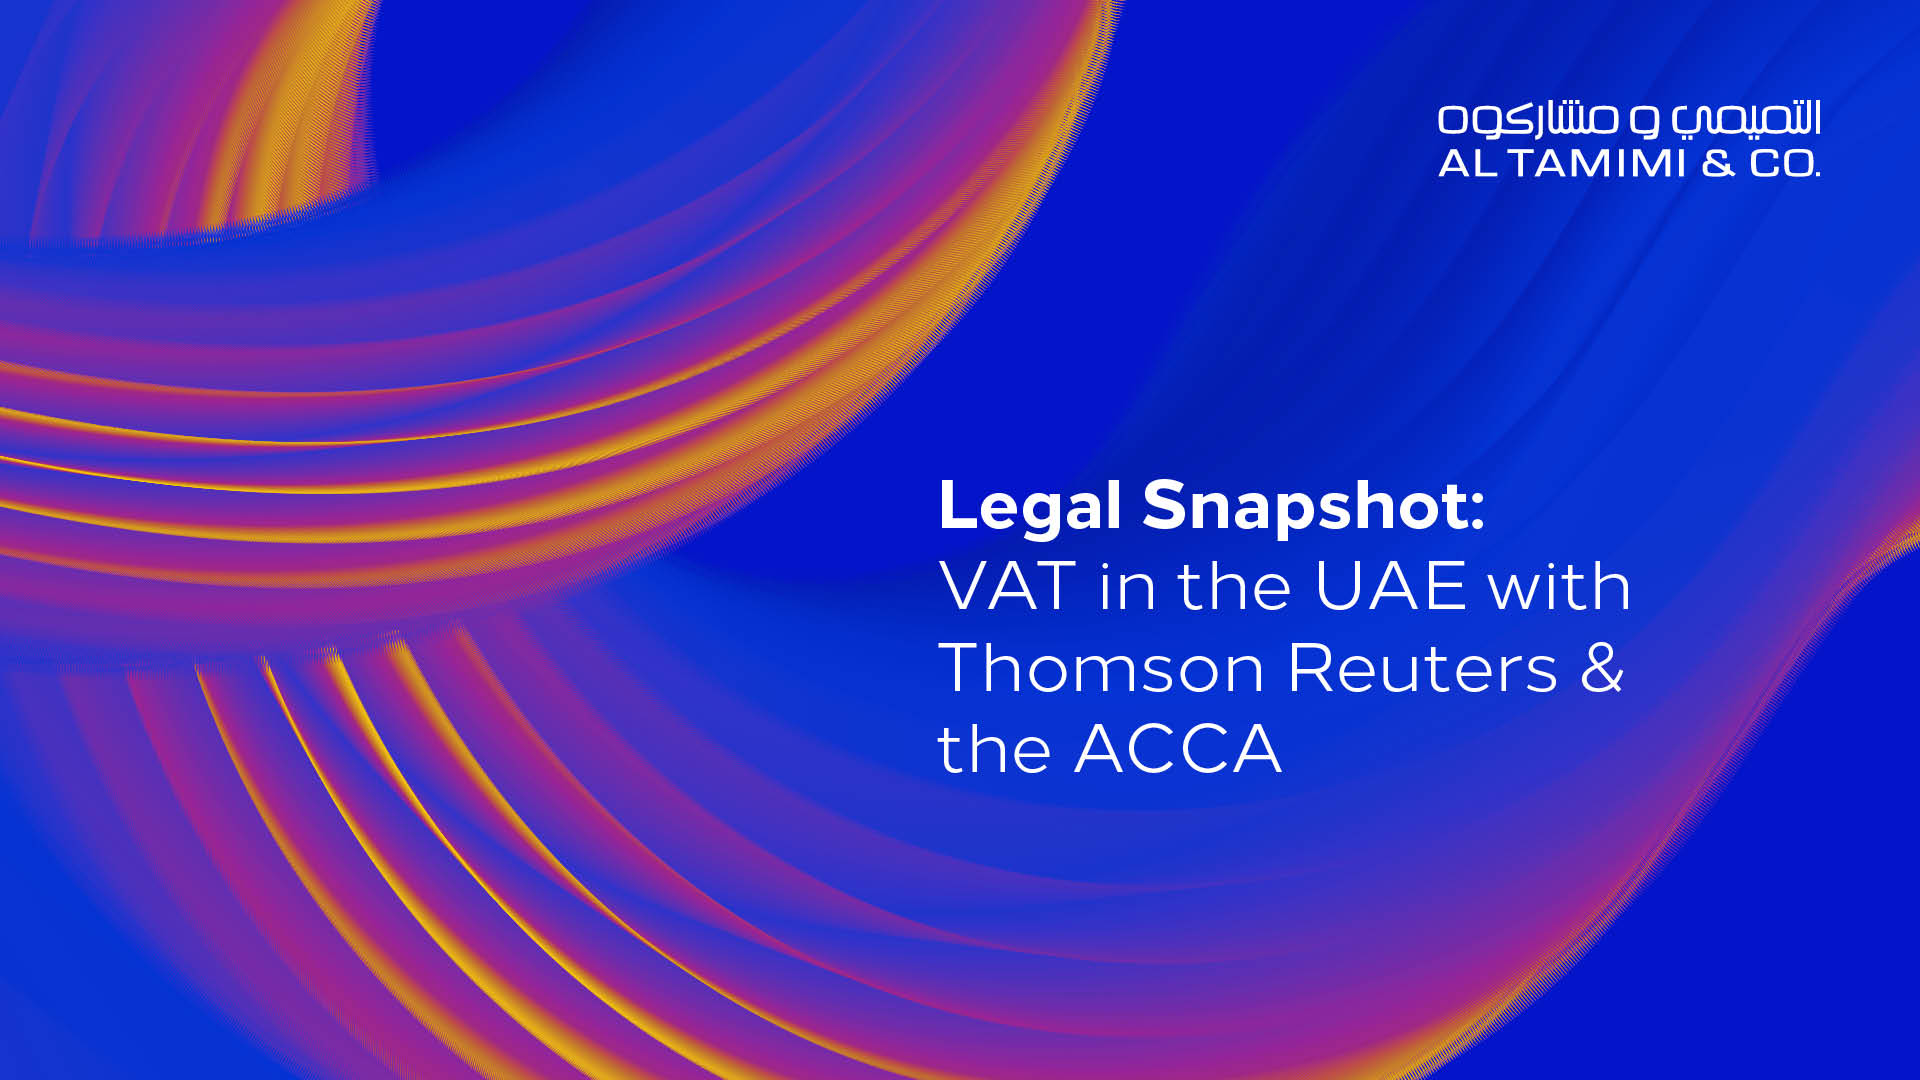 Legal Snapshot: VAT in the UAE with Thomson Reuters and the ACCA